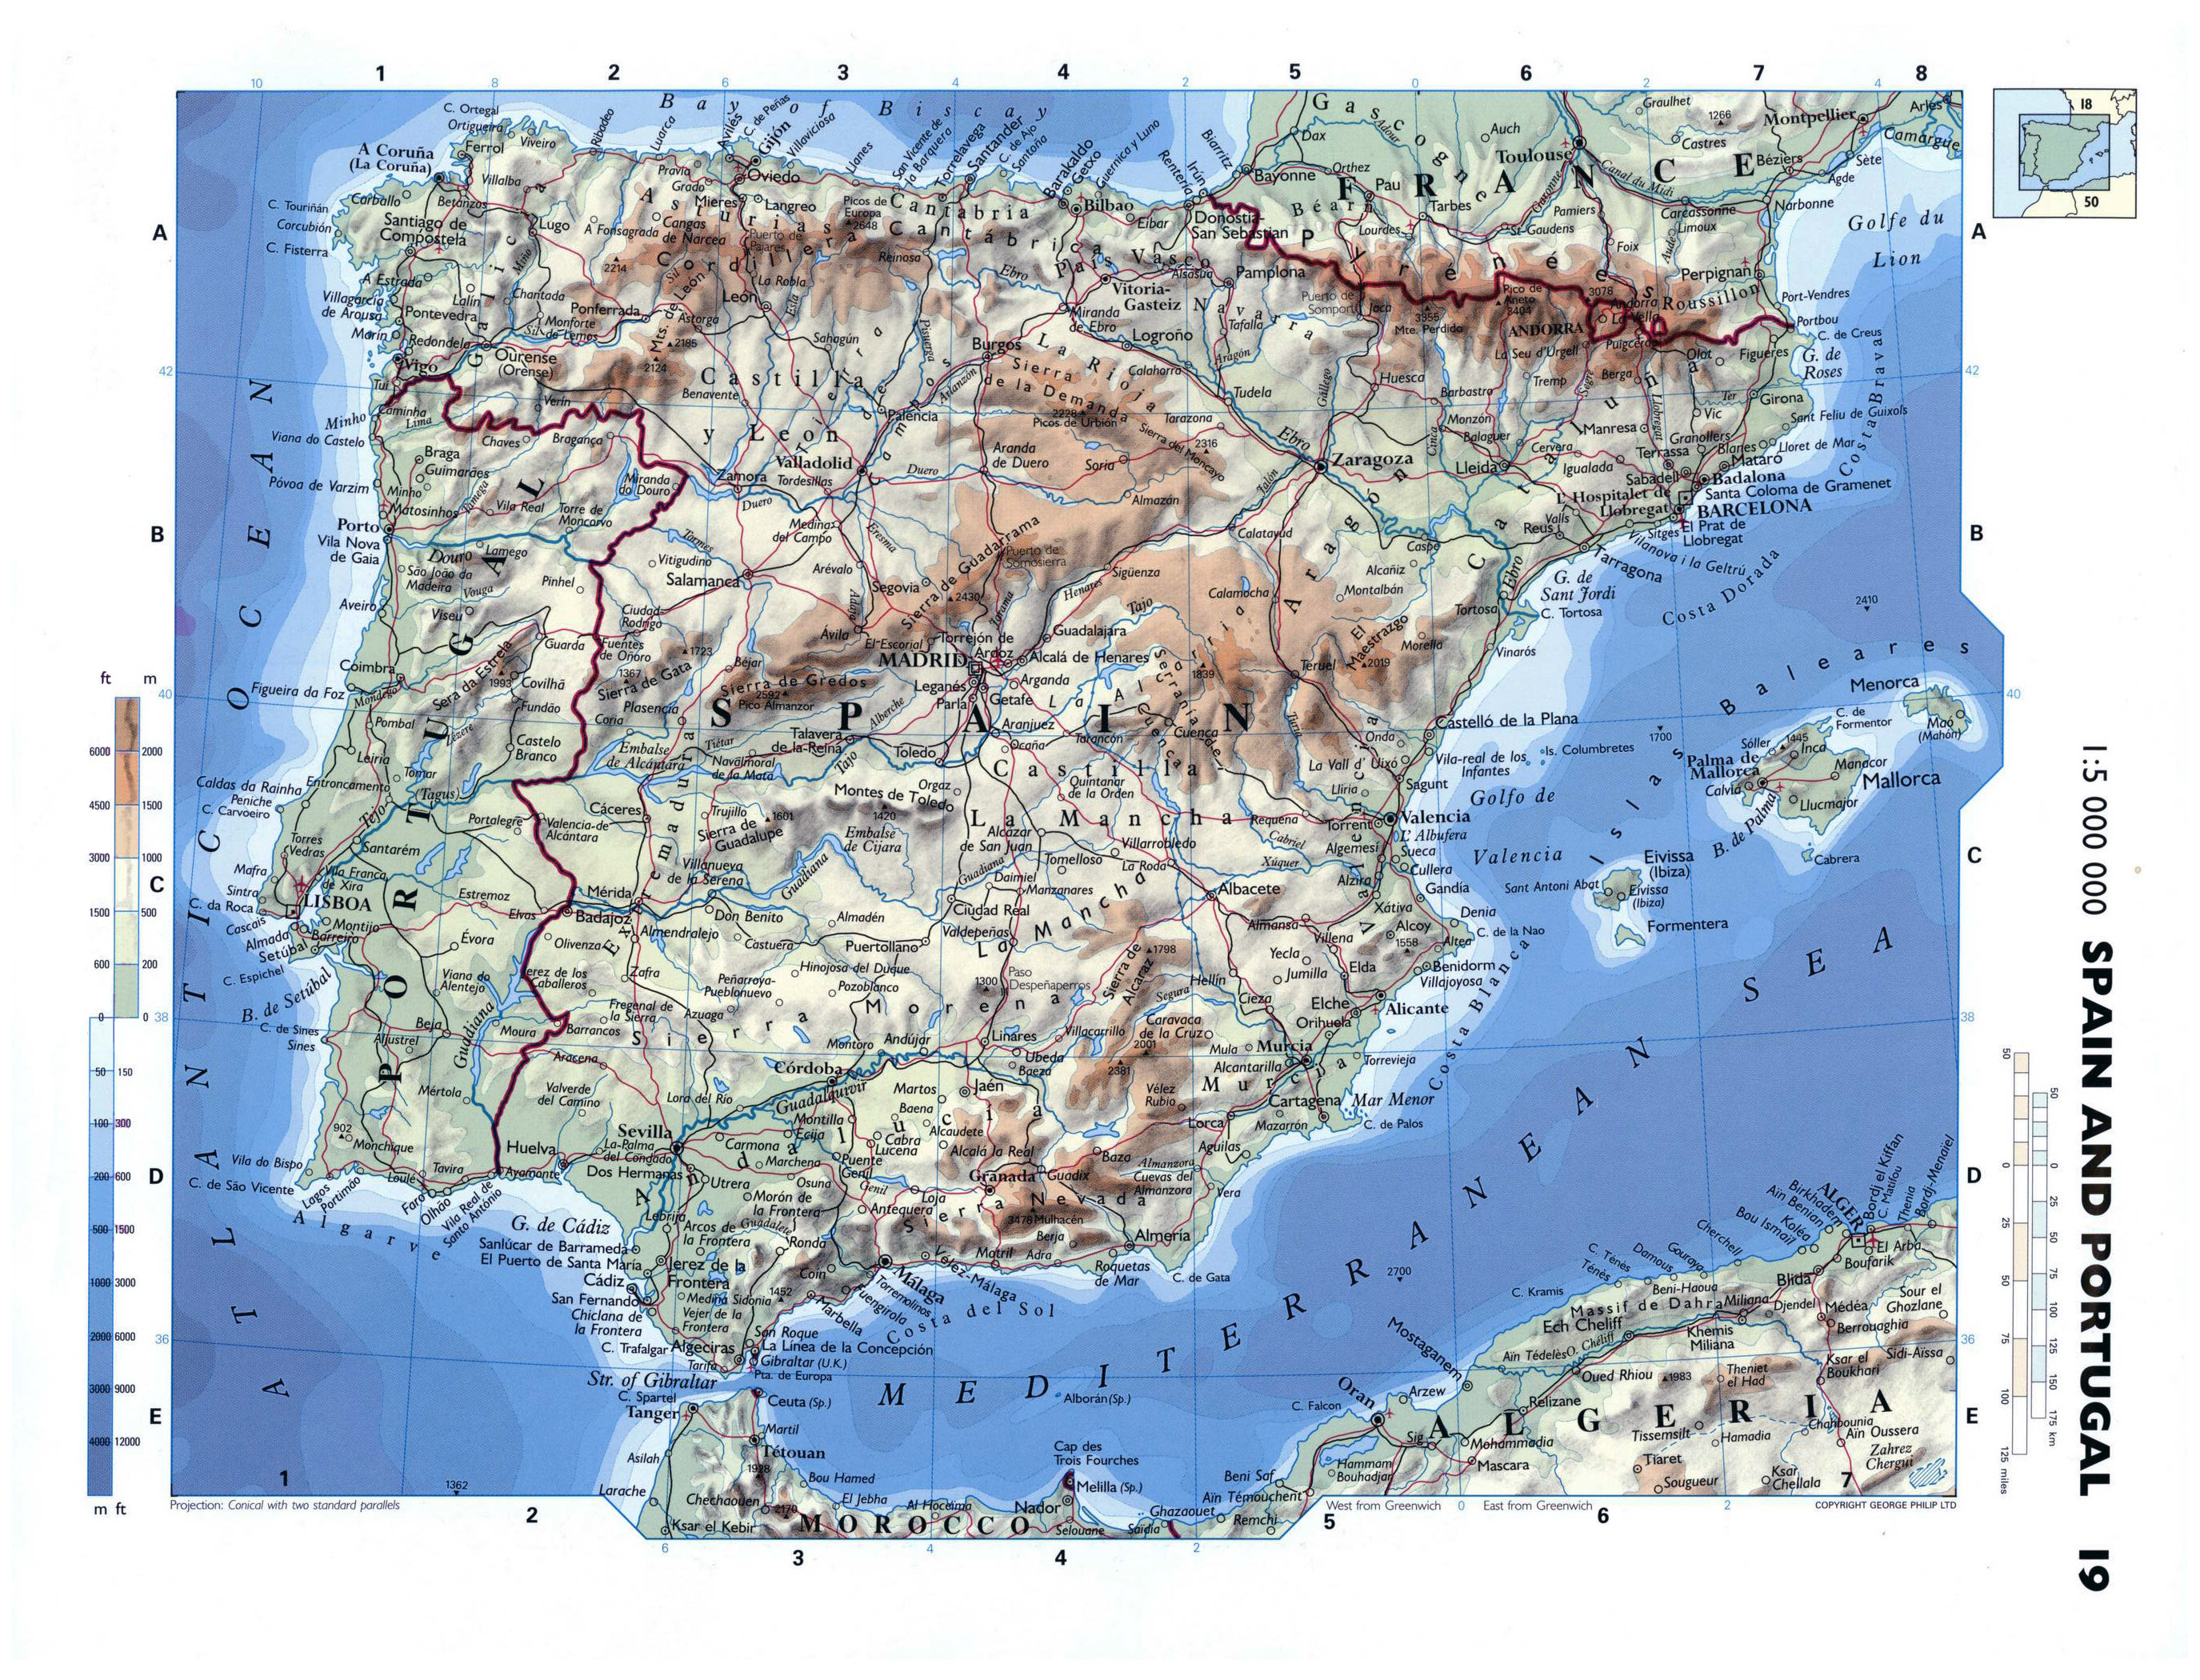 Map Of Portugal And Spain Detailed.Large Detailed Physical Map Of Spain And Portugal With Roads And